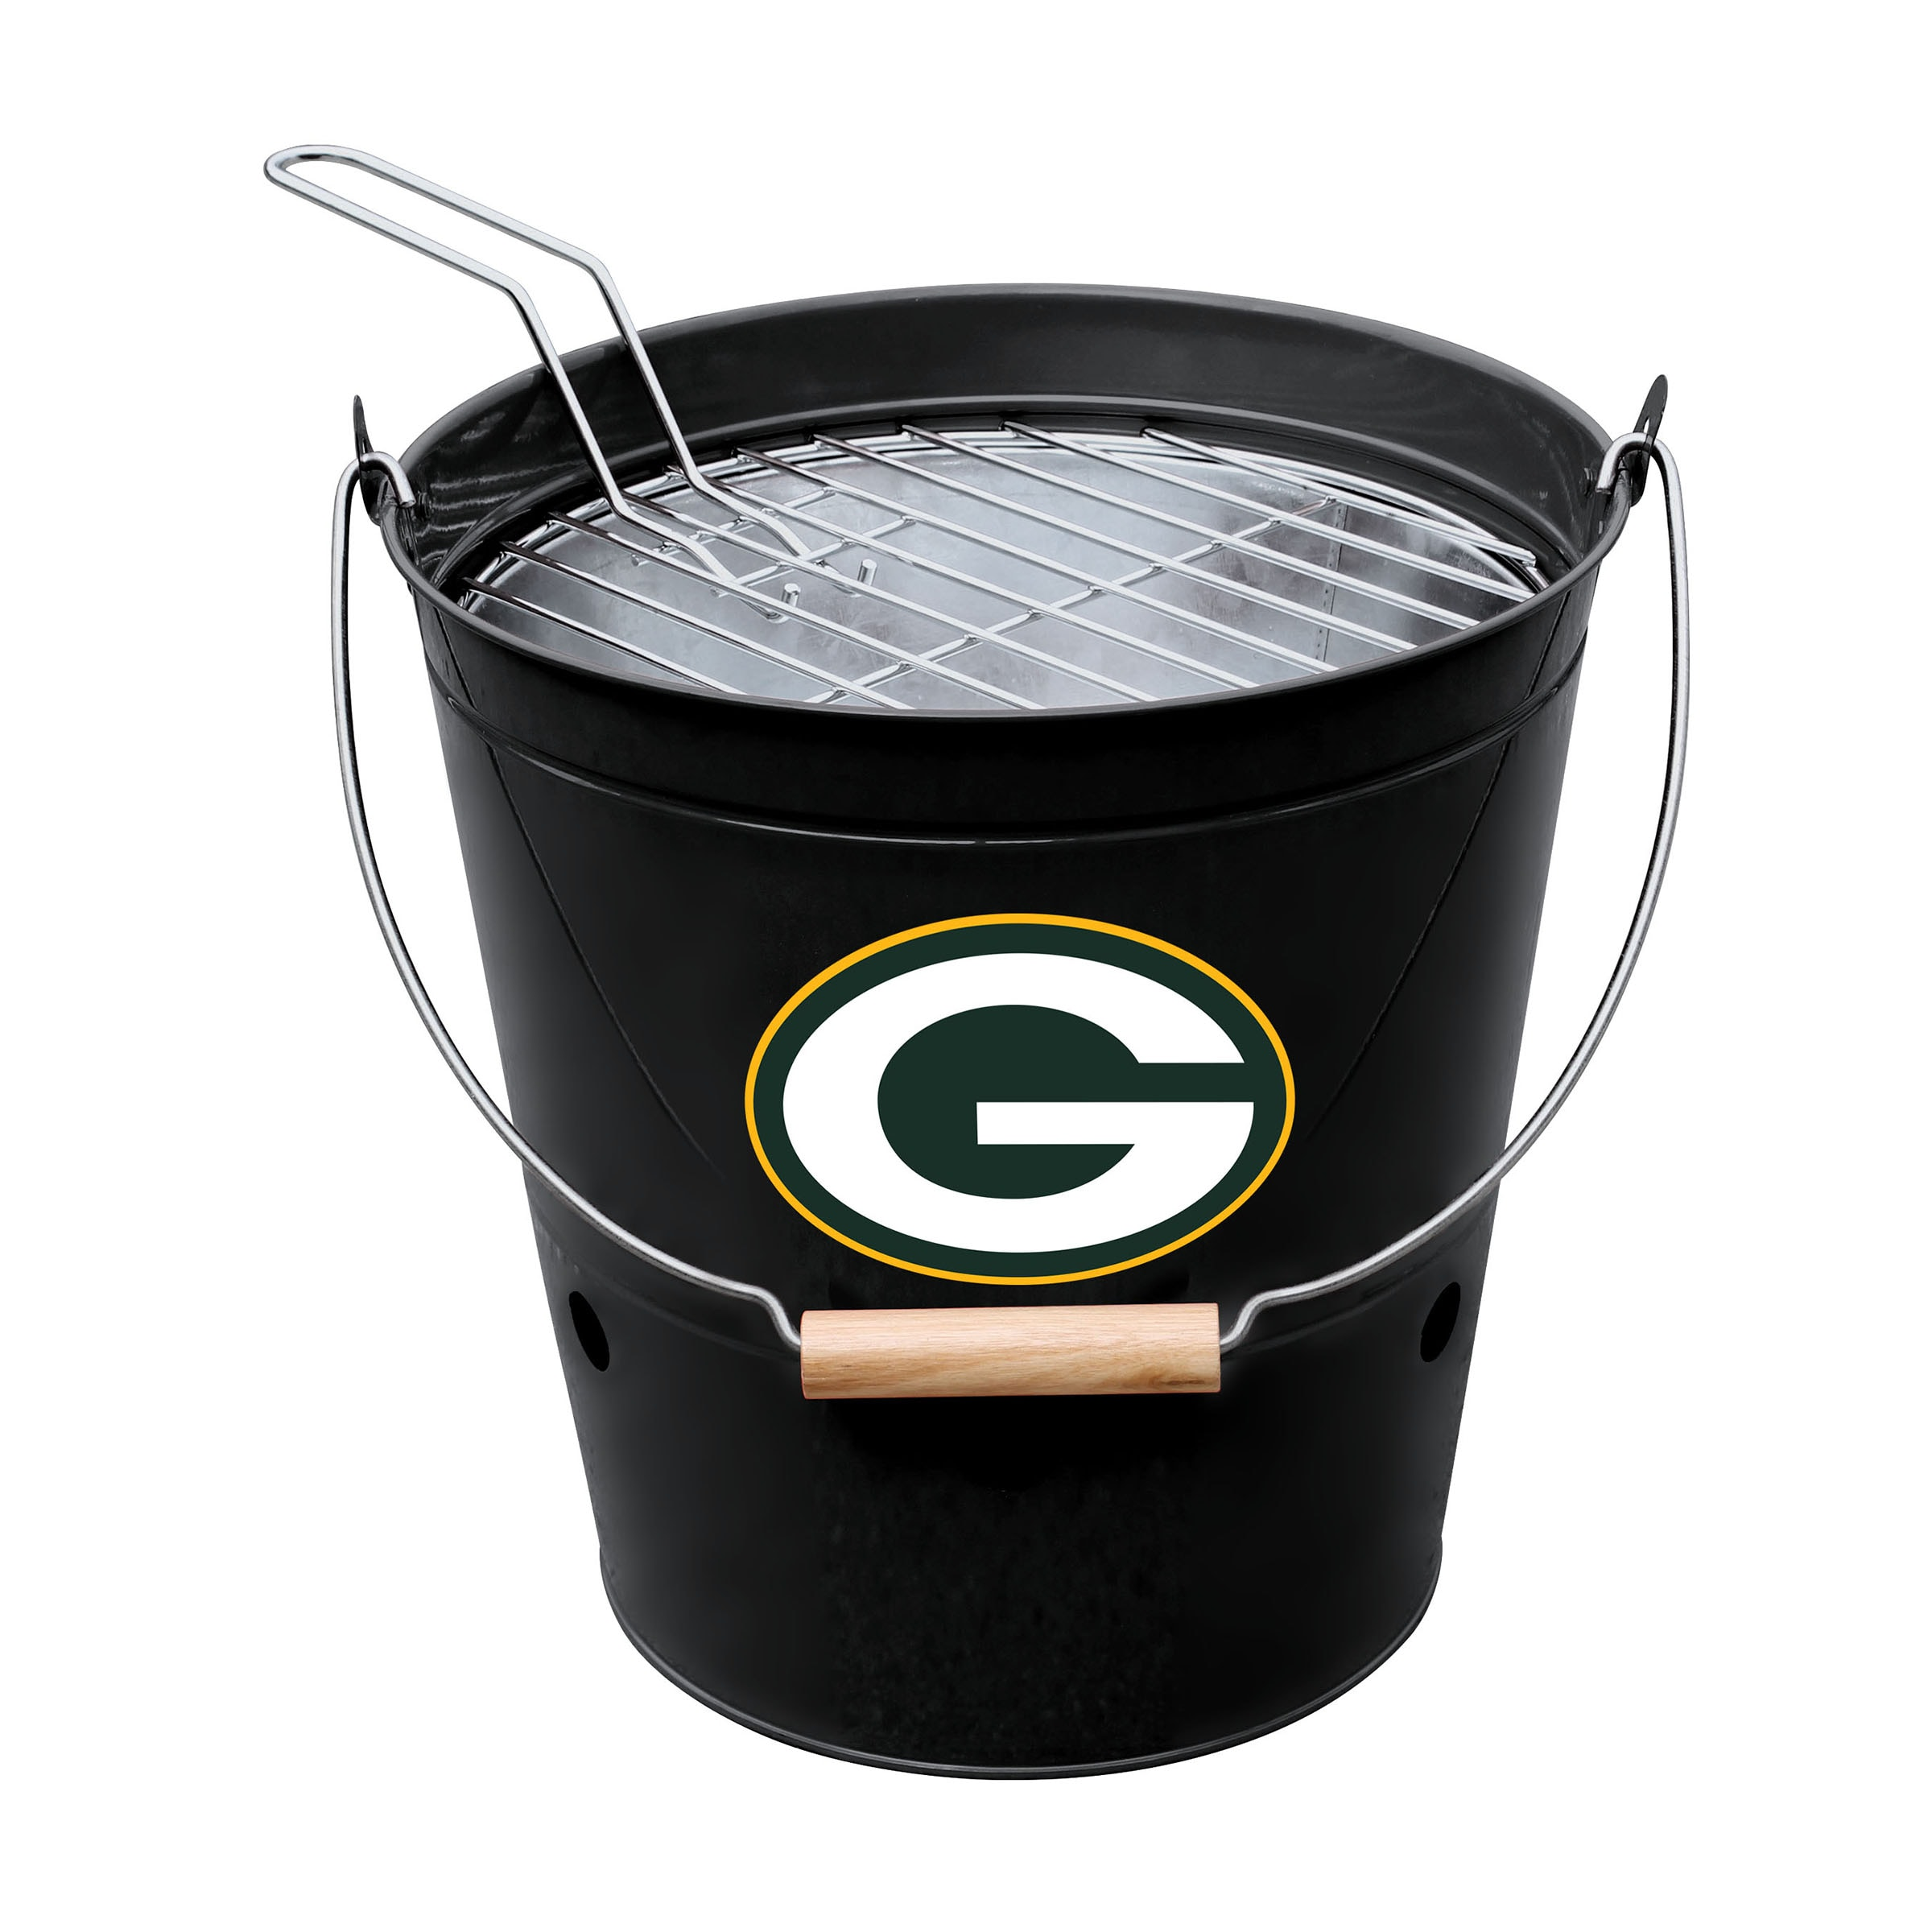 Green Bay Packers Imperial Bucket Grill - Black